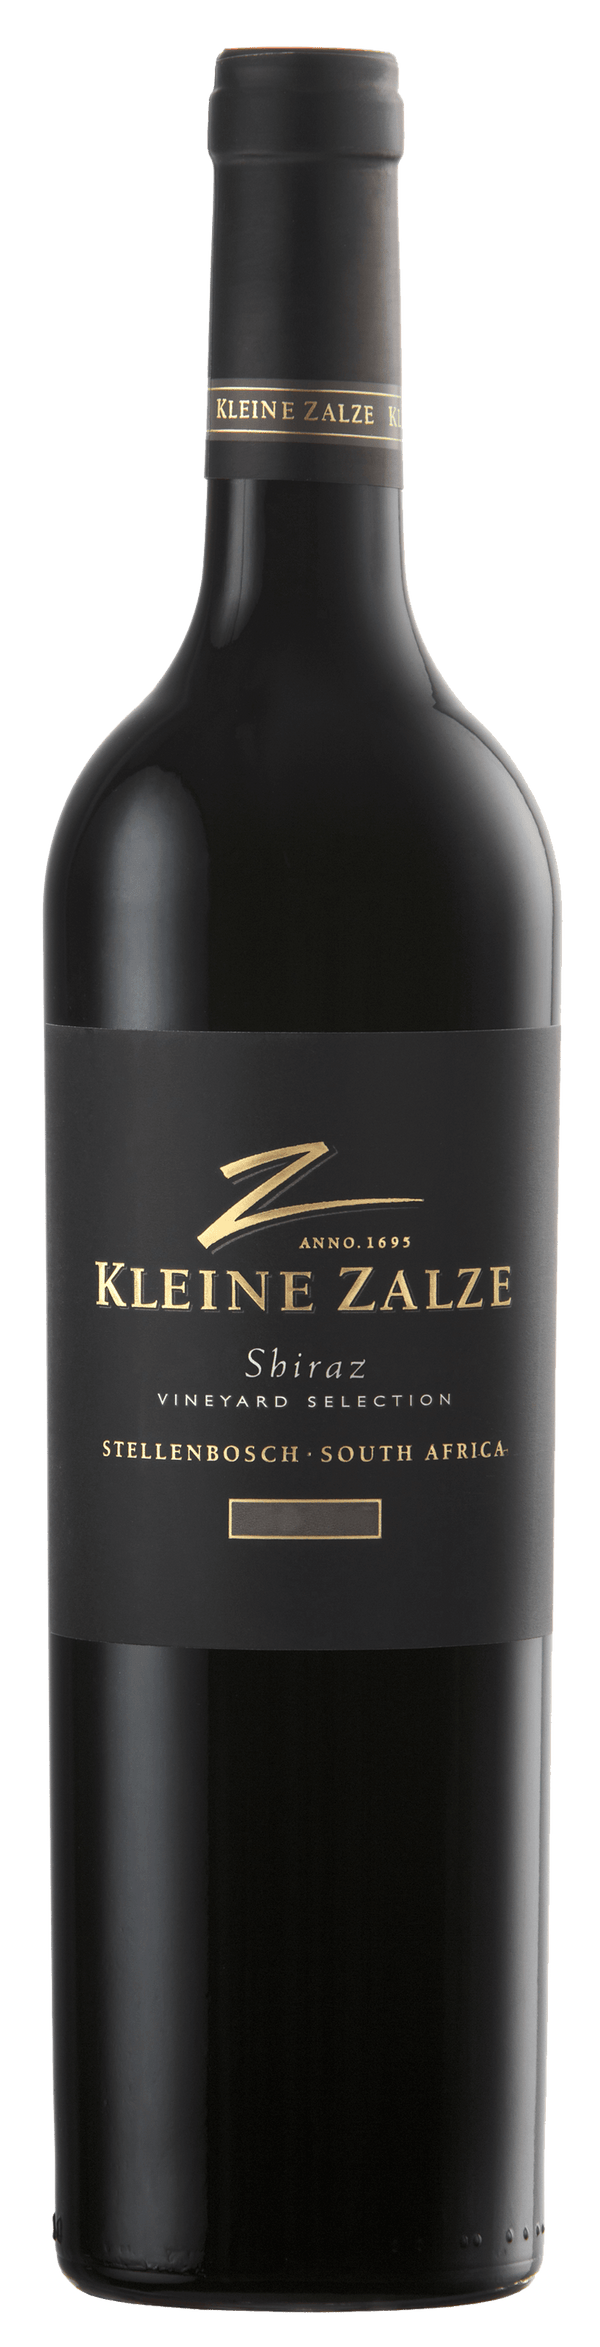 Kleine Zalze, Vineyard Selection Shiraz, Stellenbosch, South Africa 2014 - thedropstore.com